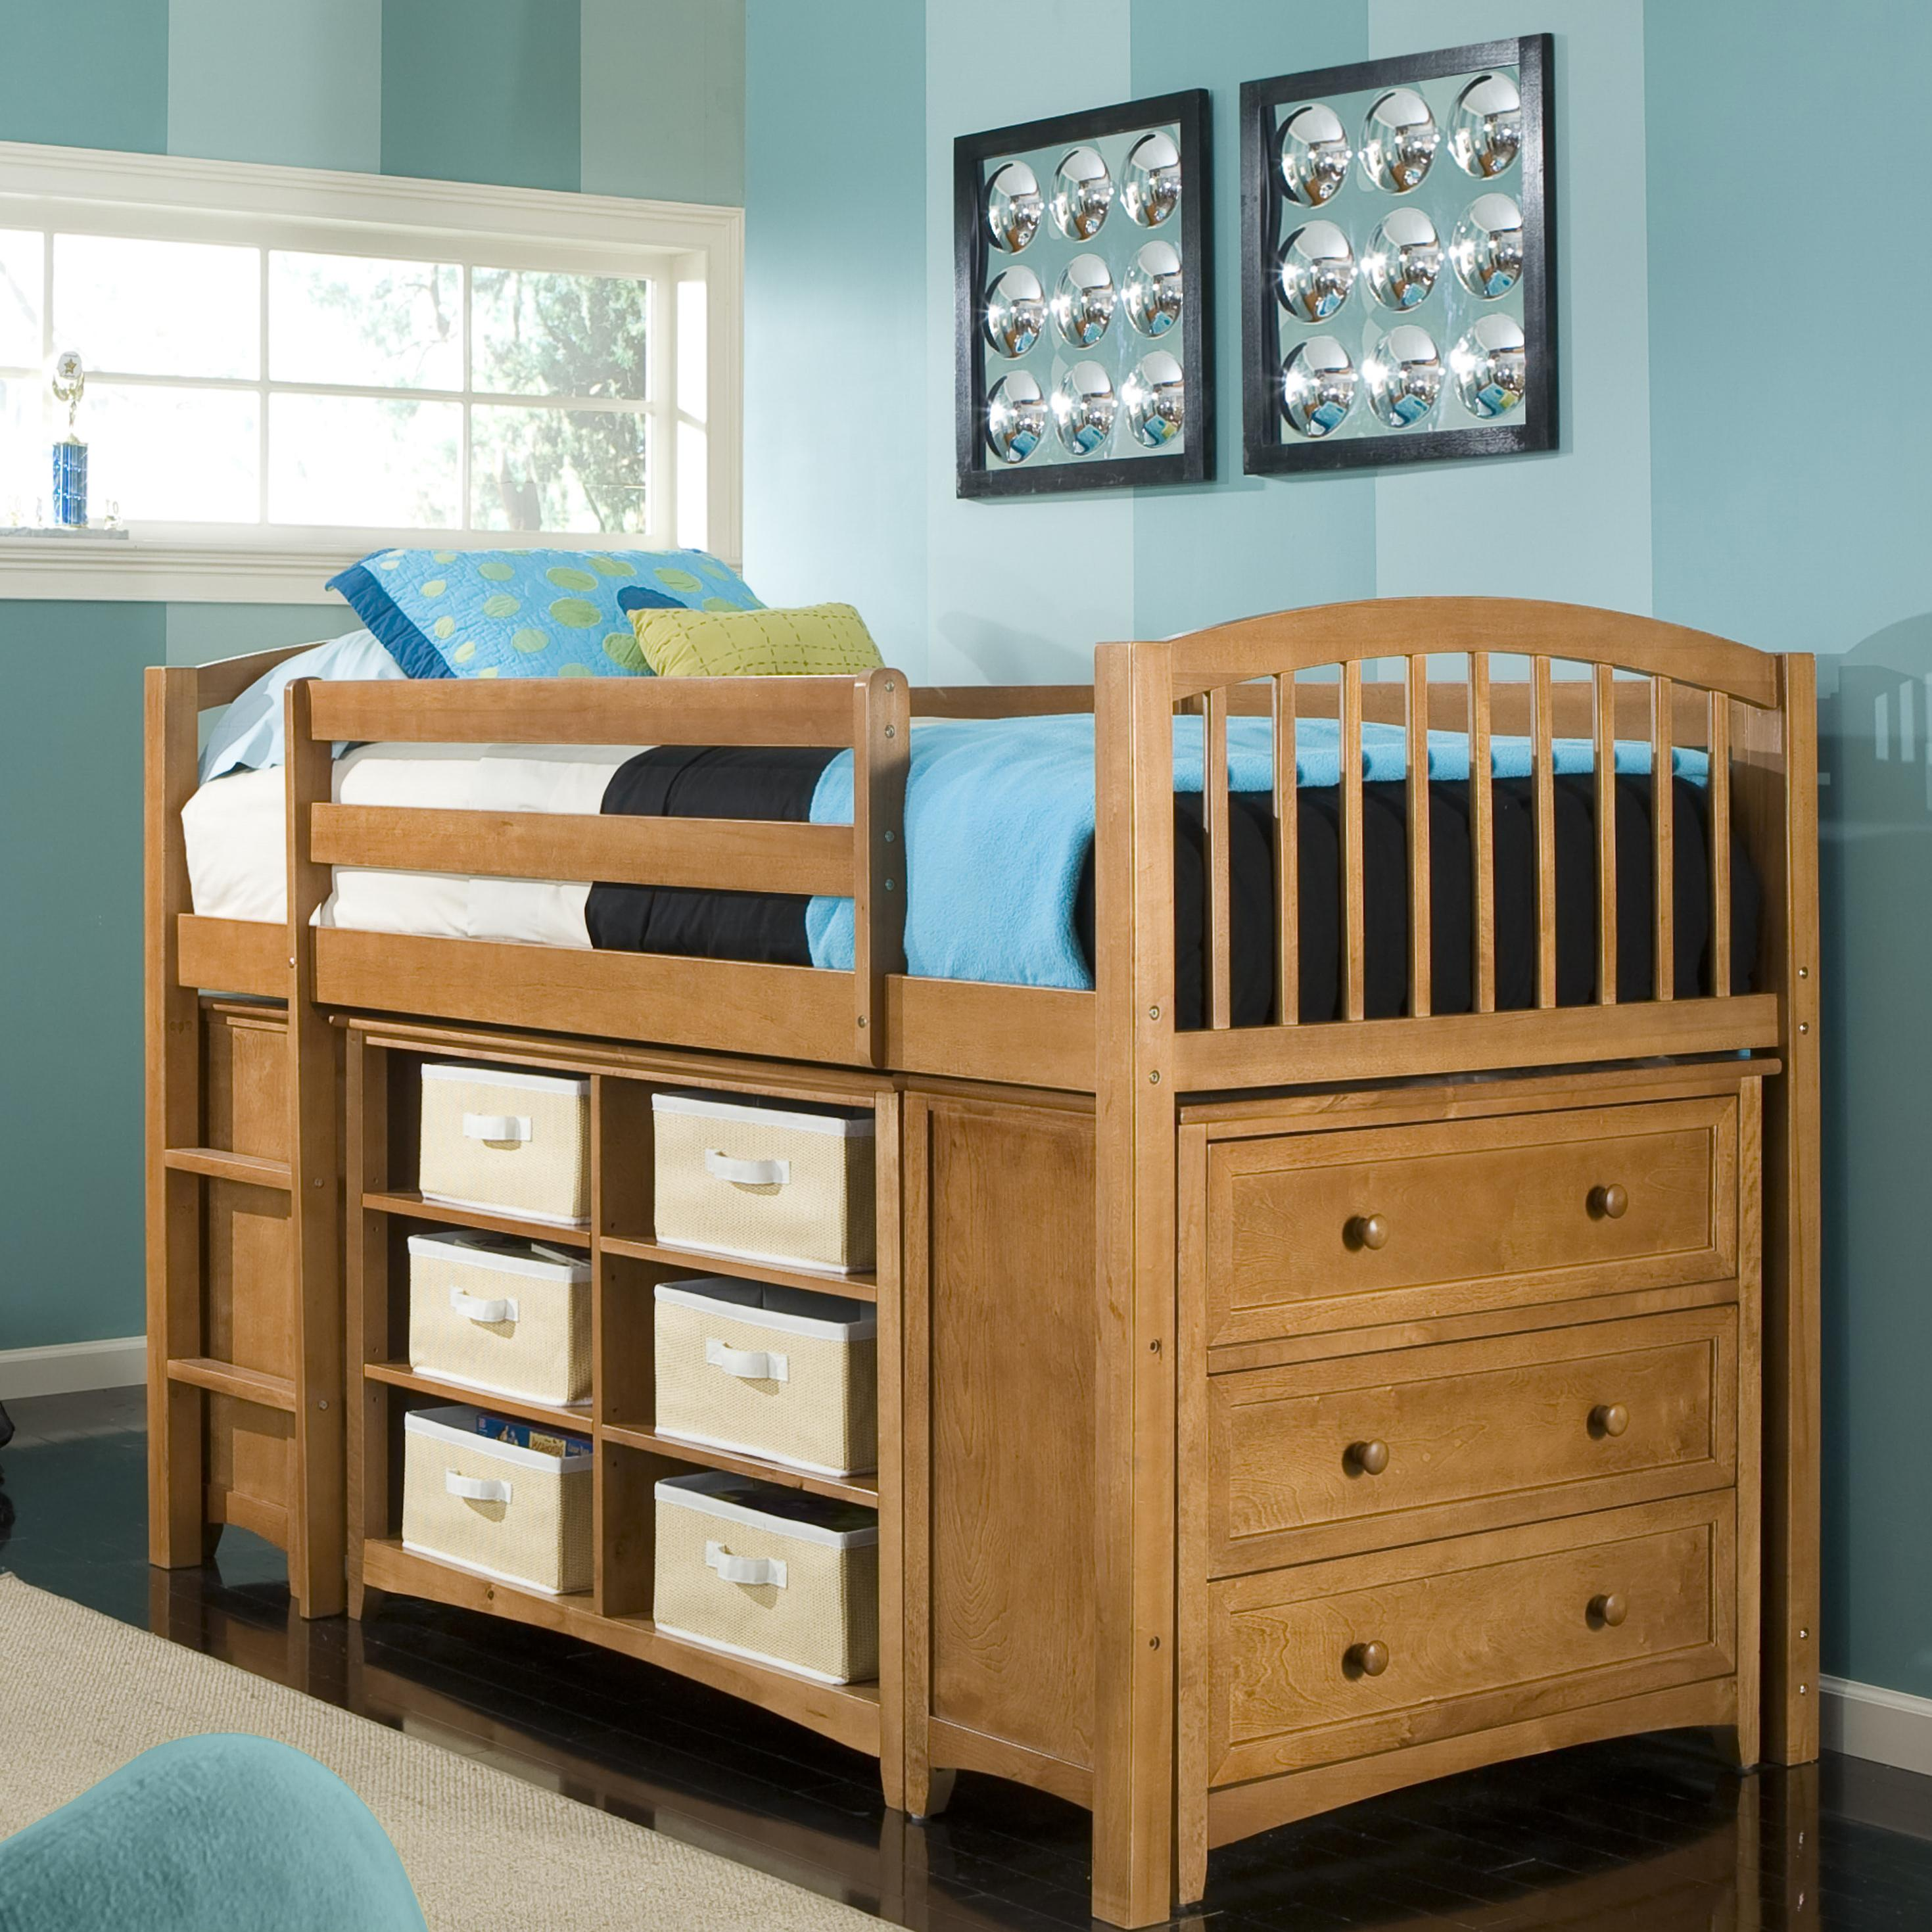 Childrens Beds With Storage Home Decorating Pictures Childrens Beds With Storage